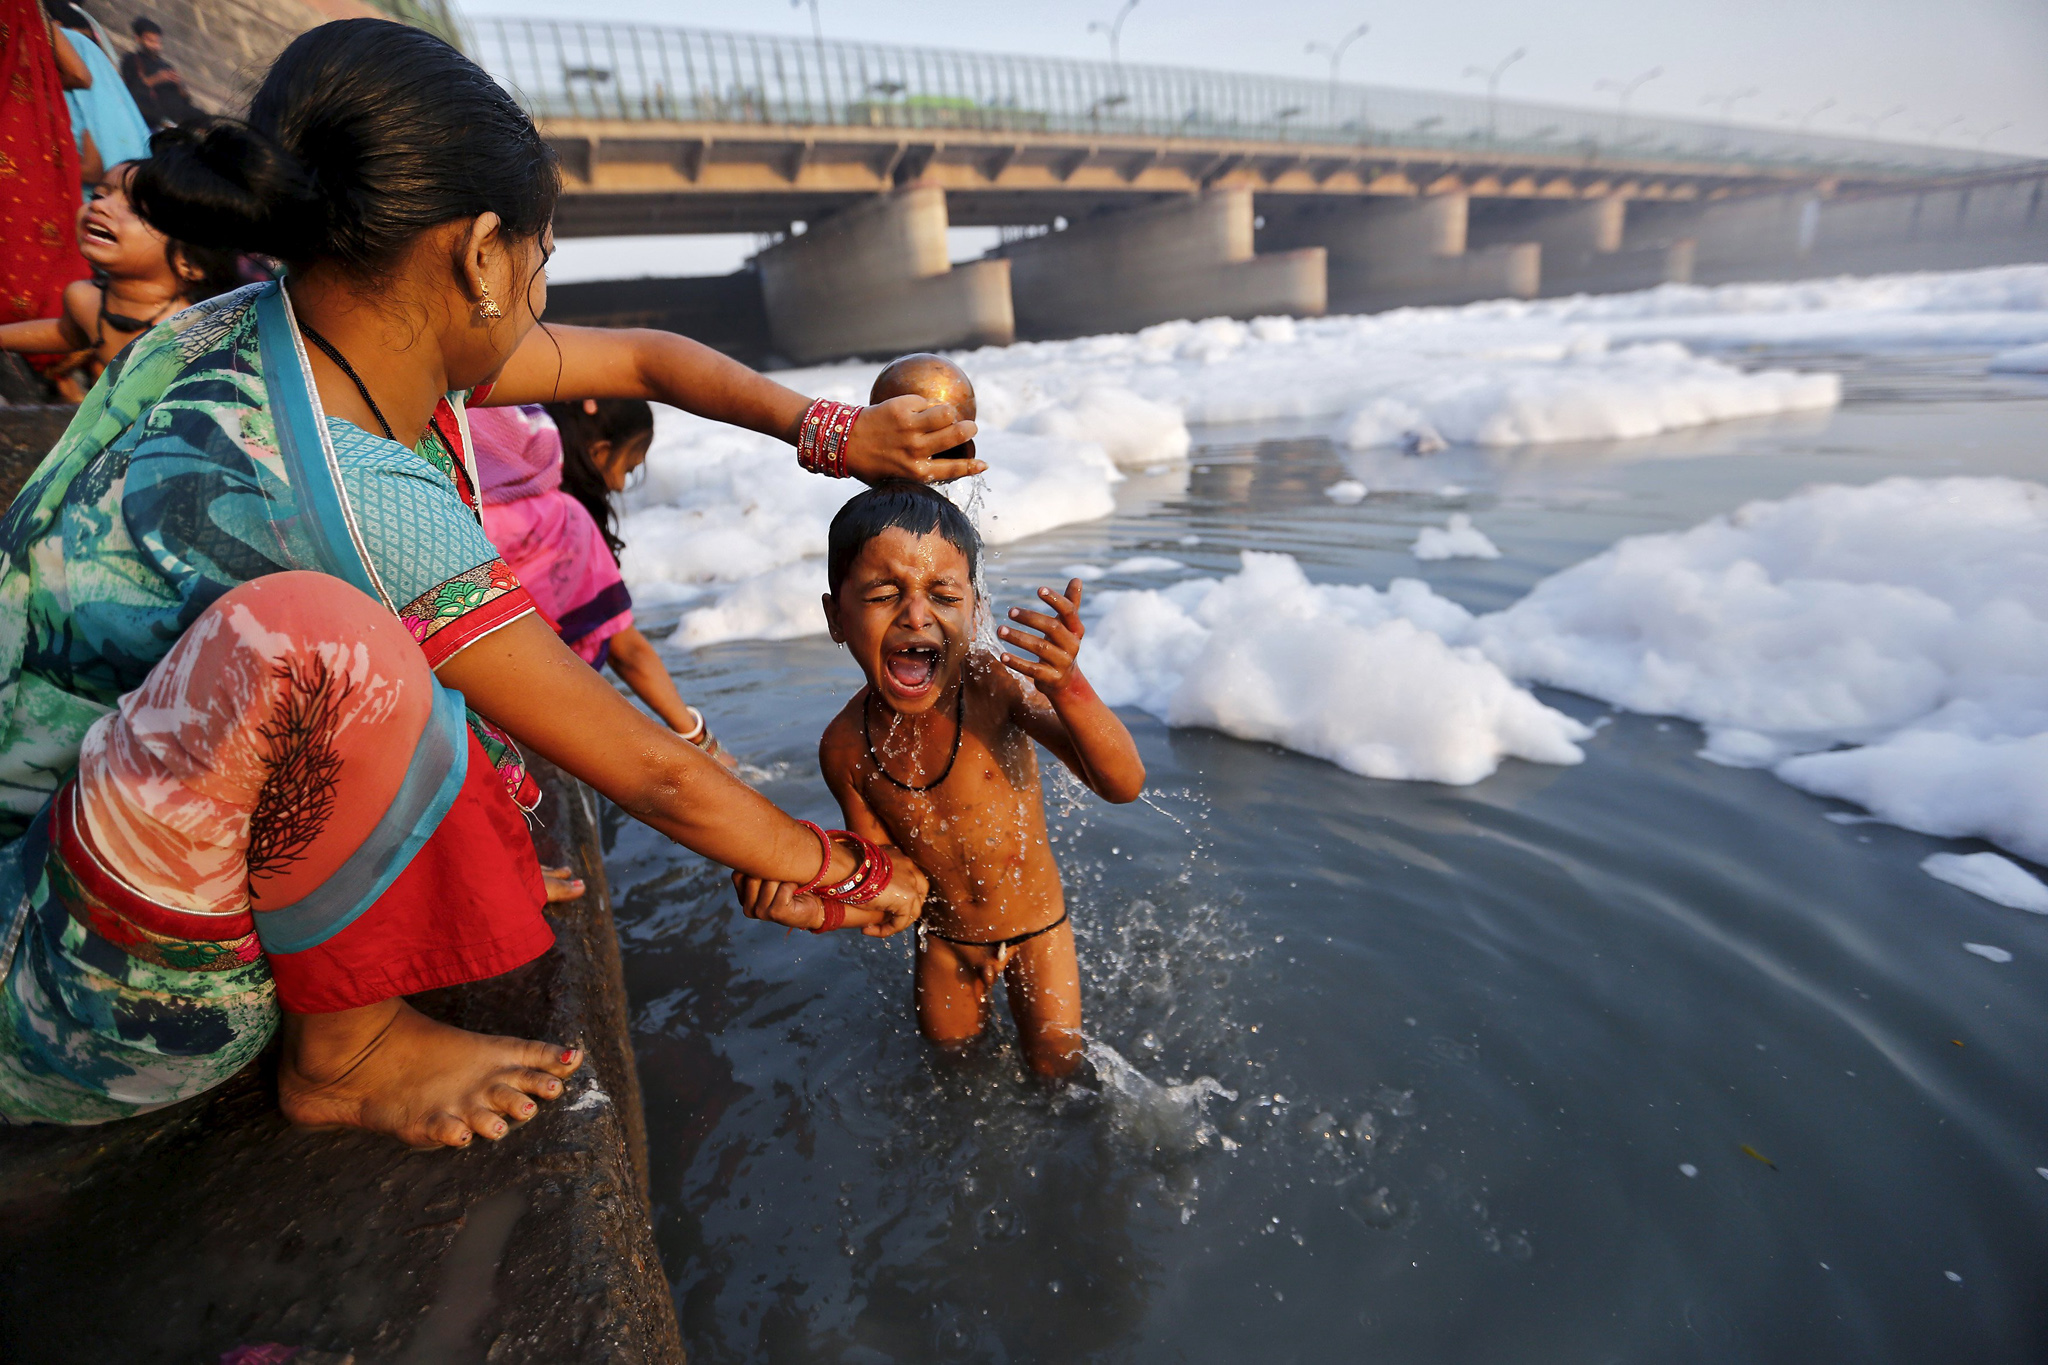 A woman bathes her child after worshipping the sun god Surya in the polluted waters of Yamuna river during the Hindu religious festival of Chatt Puja in New Delhi...A woman bathes her child after worshipping the sun god Surya in the polluted waters of Yamuna river during the Hindu religious festival of Chatt Puja in New Delhi, India, November 18, 2015. Hindu women fast for the whole day for the betterment of their families and the society during the festival. REUTERS/Anindito Mukherjee  TEMPLATE OUT